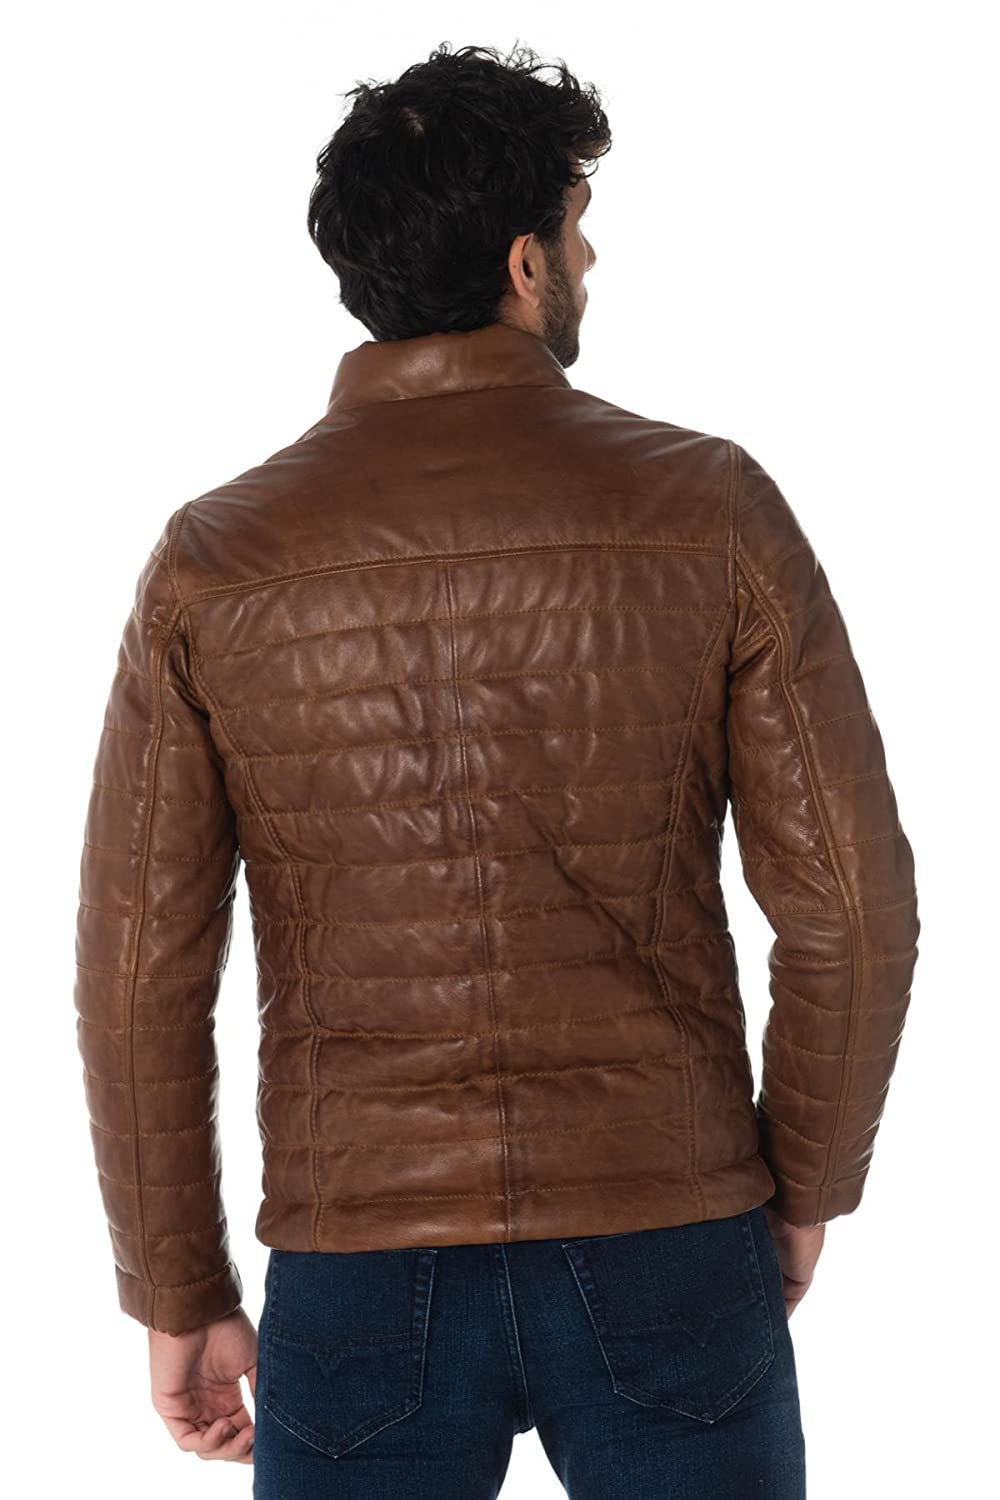 d25d746fdc6 Oakwood Blouson Footloose Cognac 507